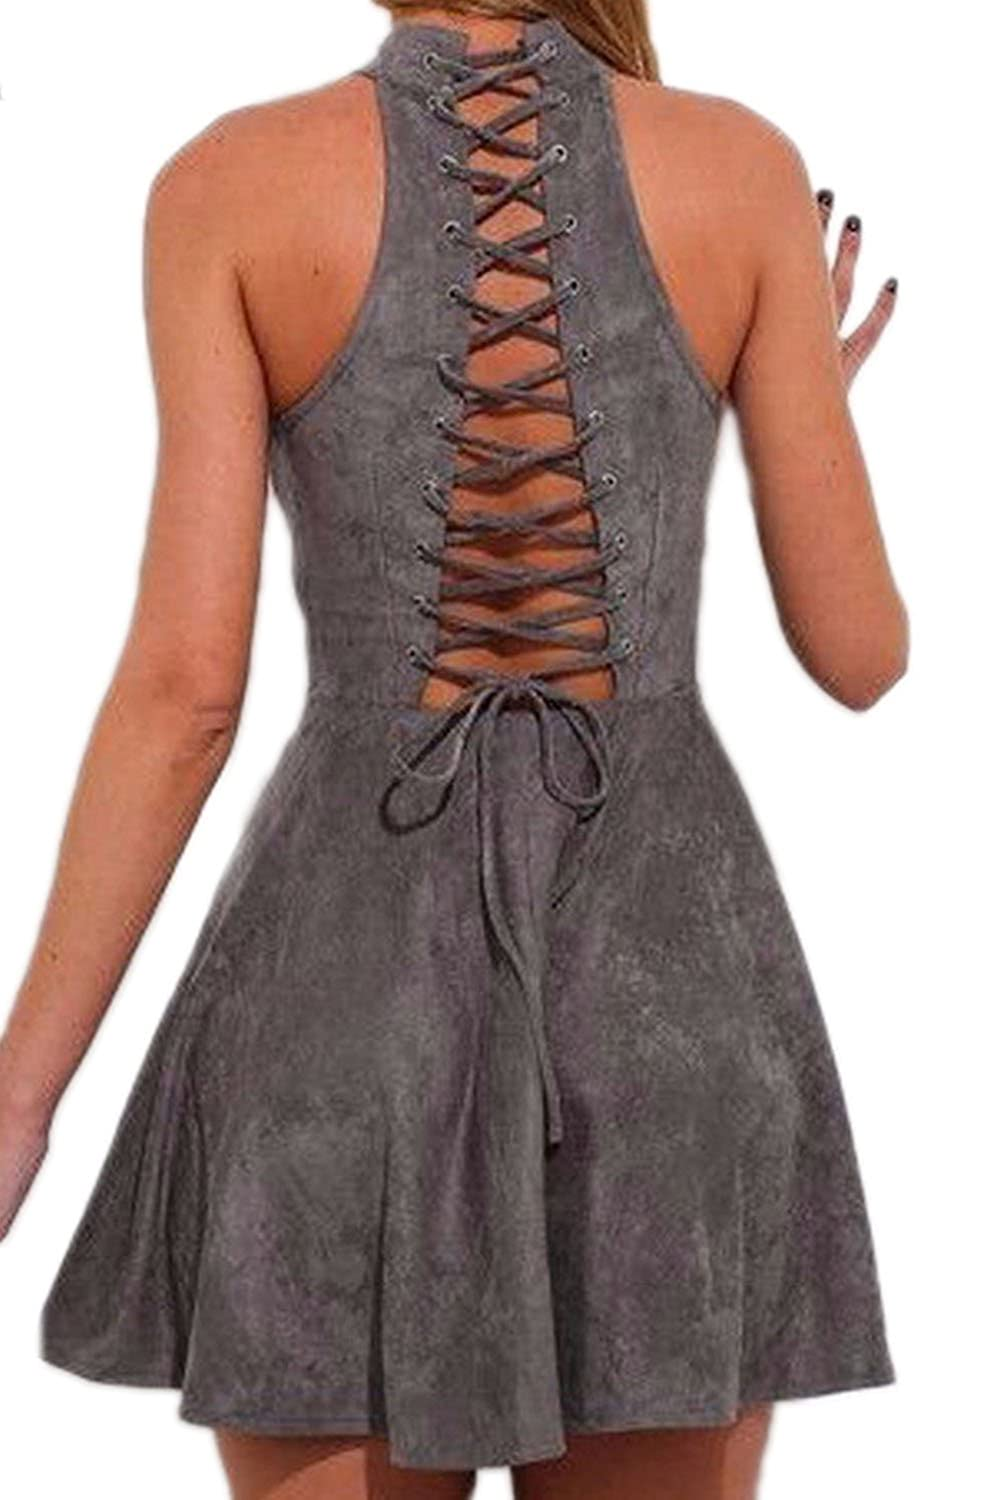 Zilcremo Women Hot Backless Back Lace Up Swing Club Party Cocktail Dress CAFZ023